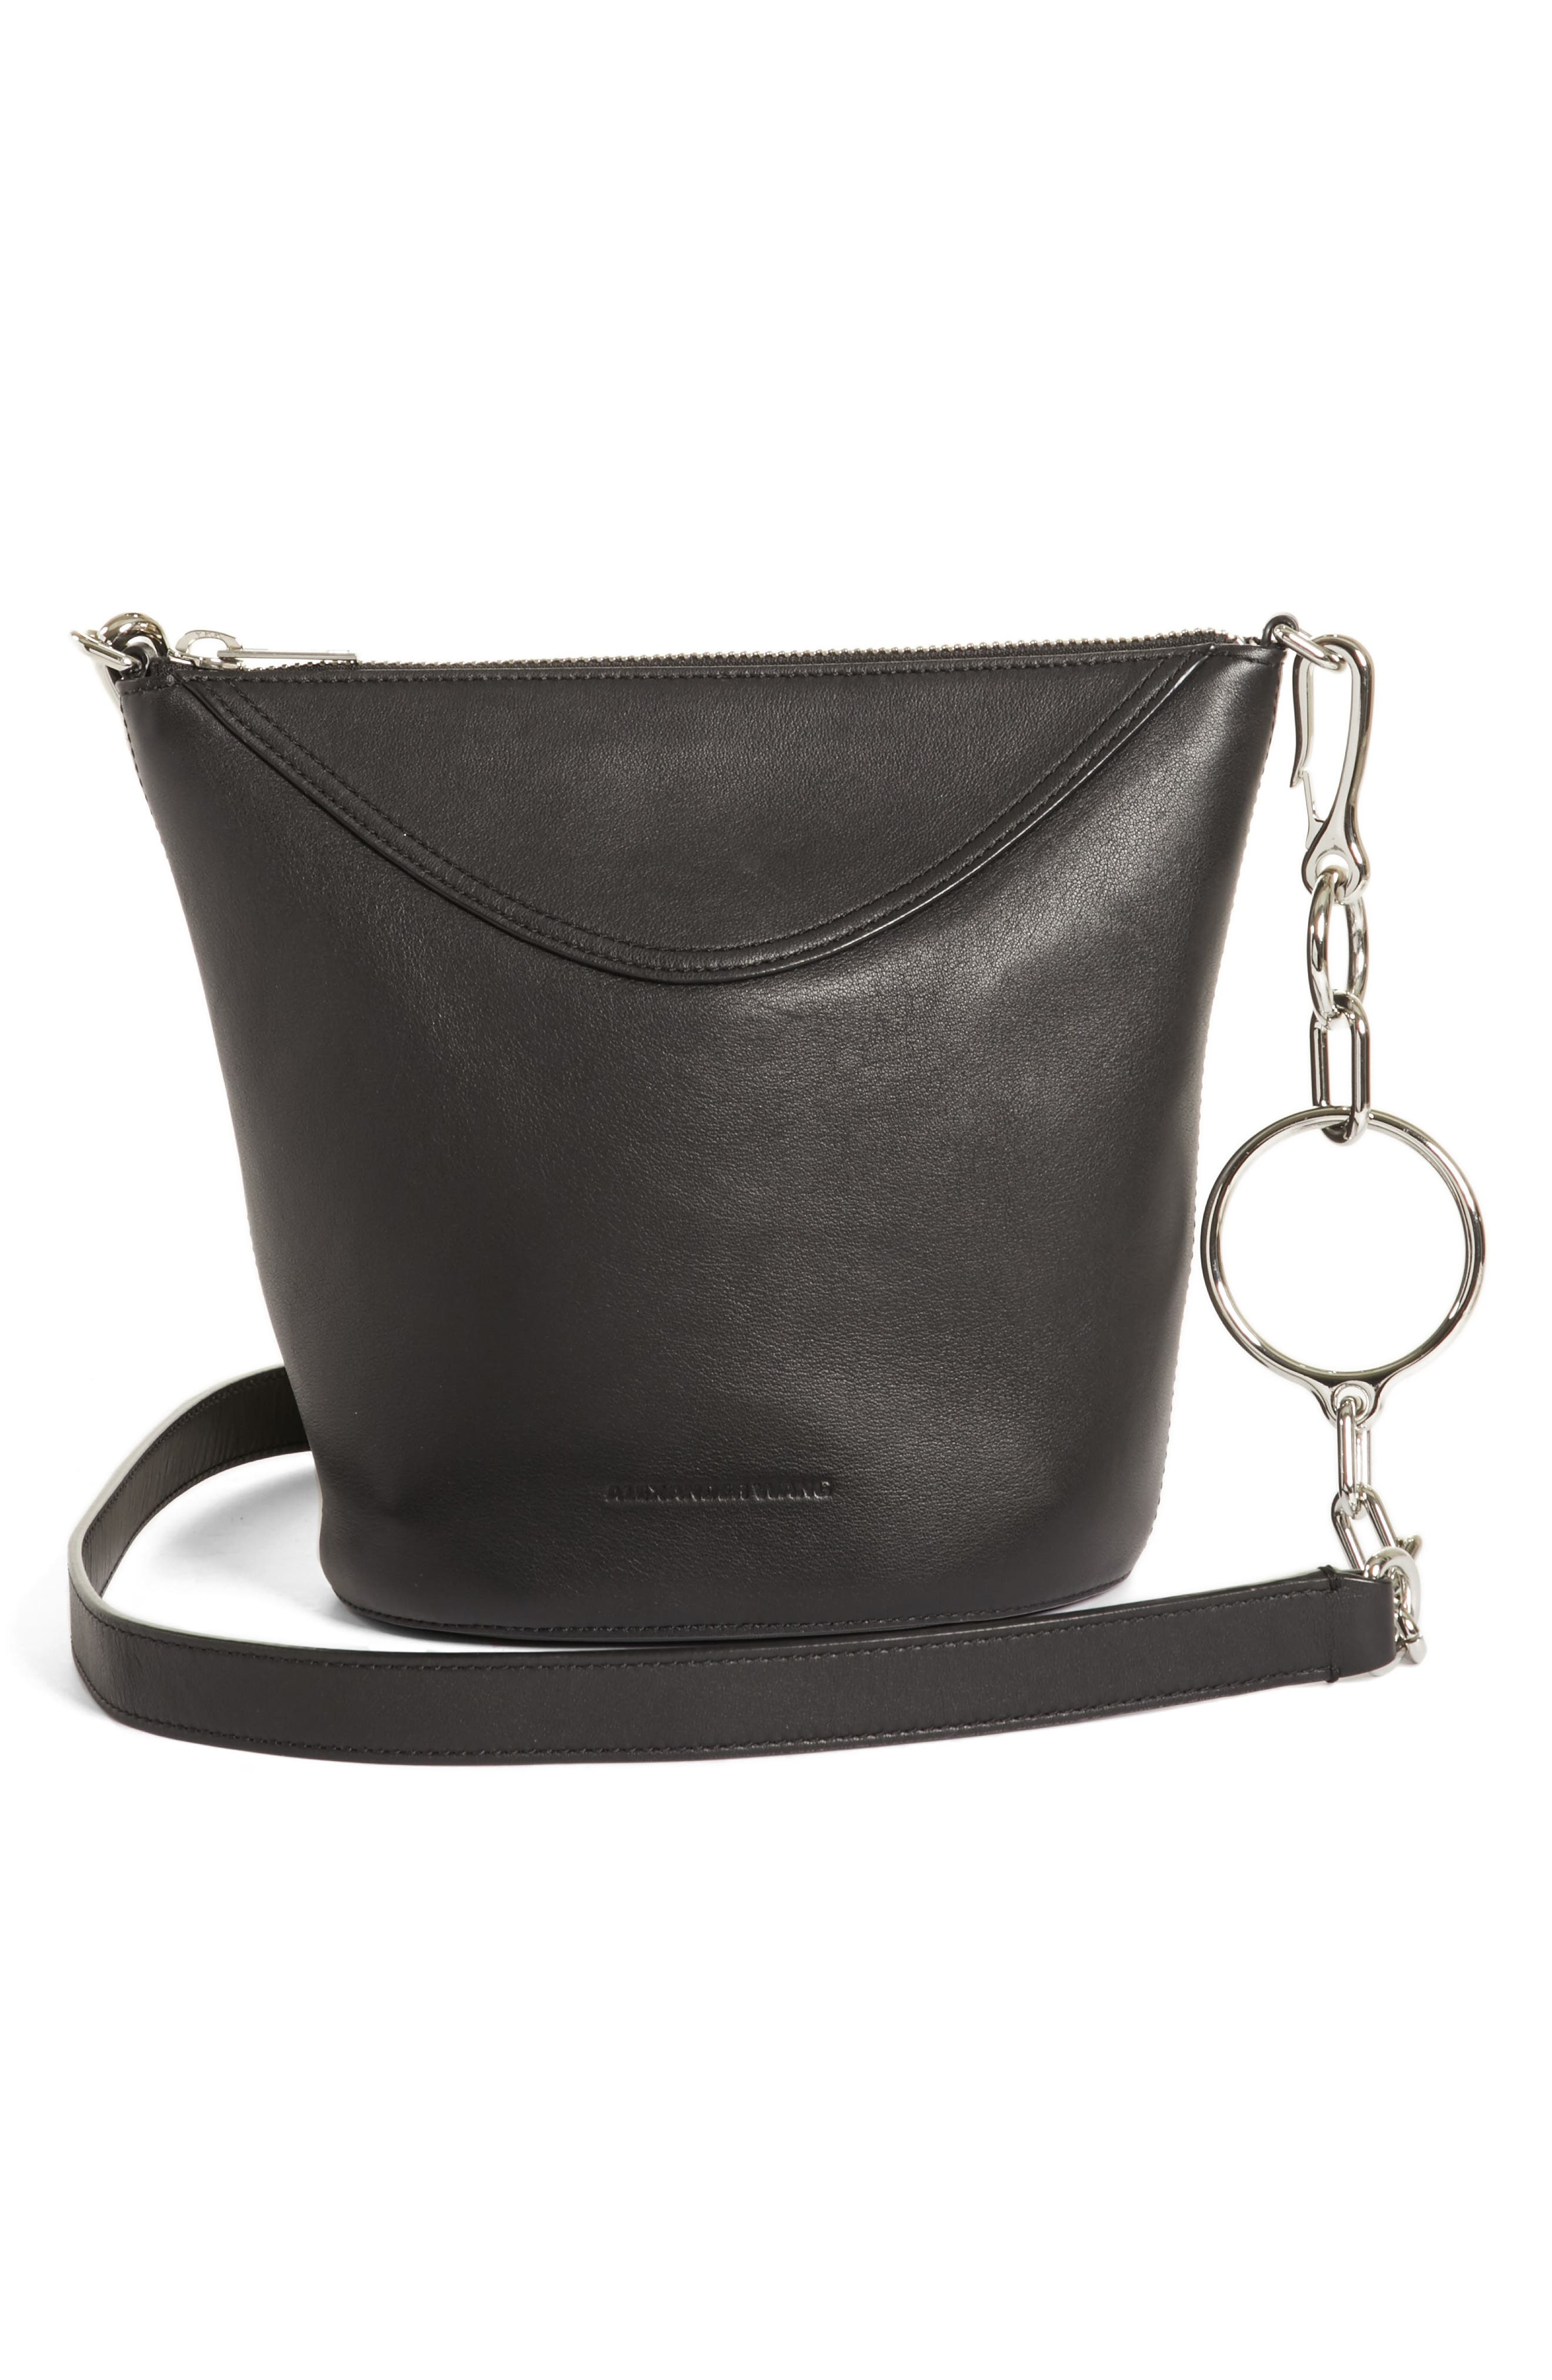 Ace Leather Bucket Bag,                             Main thumbnail 1, color,                             BLACK